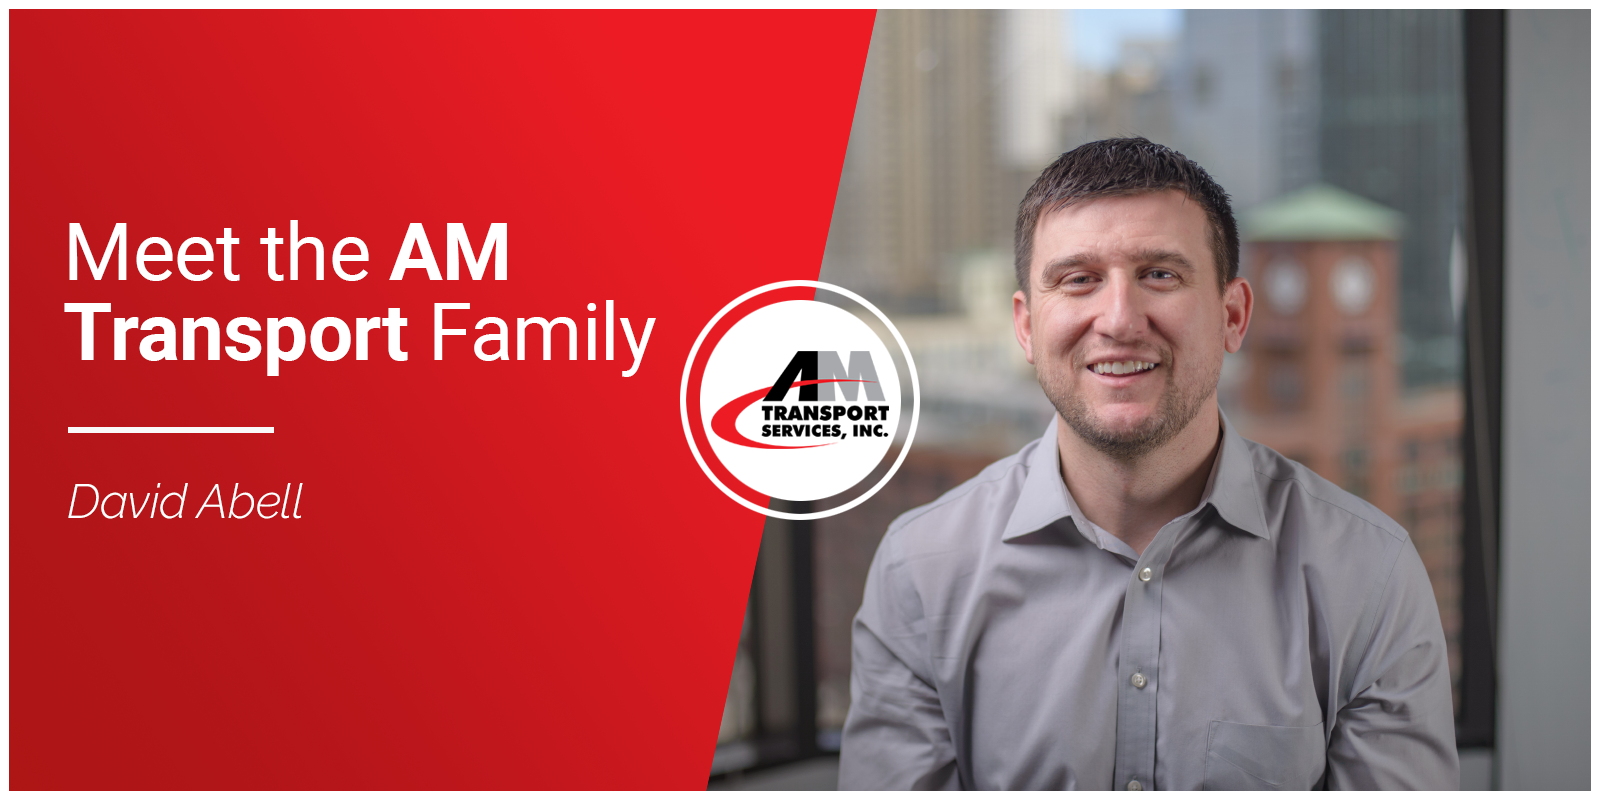 Picture of David Abell--Meet the AM Transport Family, David Abell